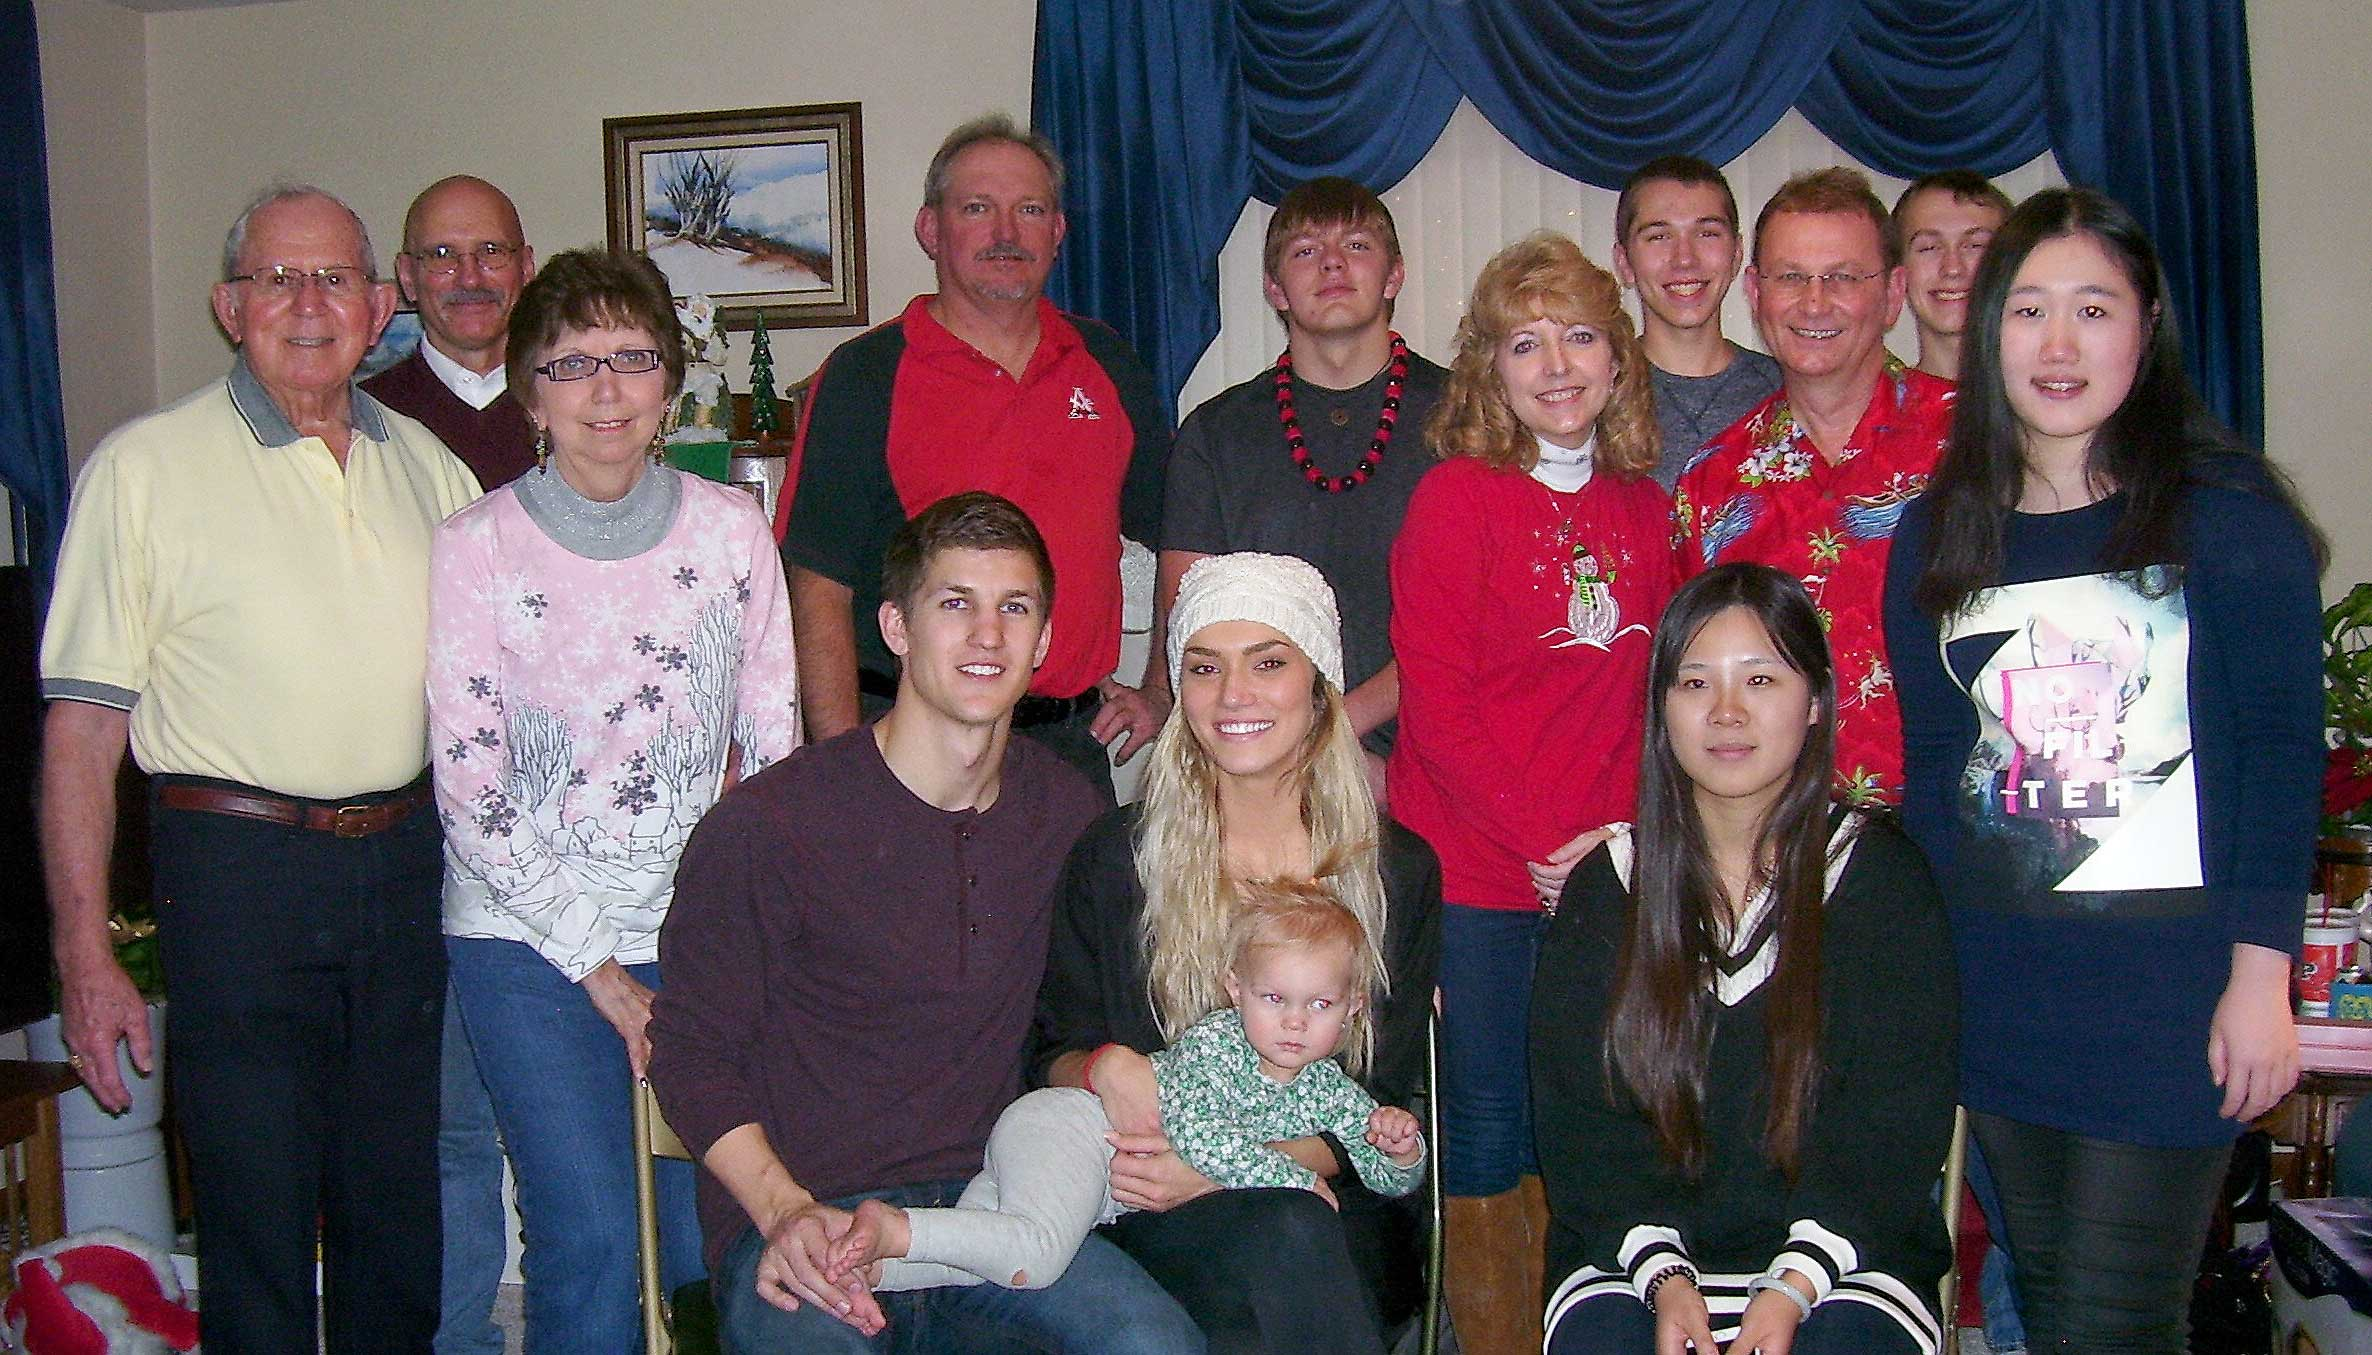 """Don and Jodi Daily, far left, of Kearney have been involved with the International Friendship Program at UNK for over six years. They typically invite their students over for dinner, play games at their home, celebrate holidays together and invite the students to family reunions. UNK students Ruinan """"Yanci"""" Yu and Naidan Zhang of China (far right) spent the holidays with the Daily family this year."""